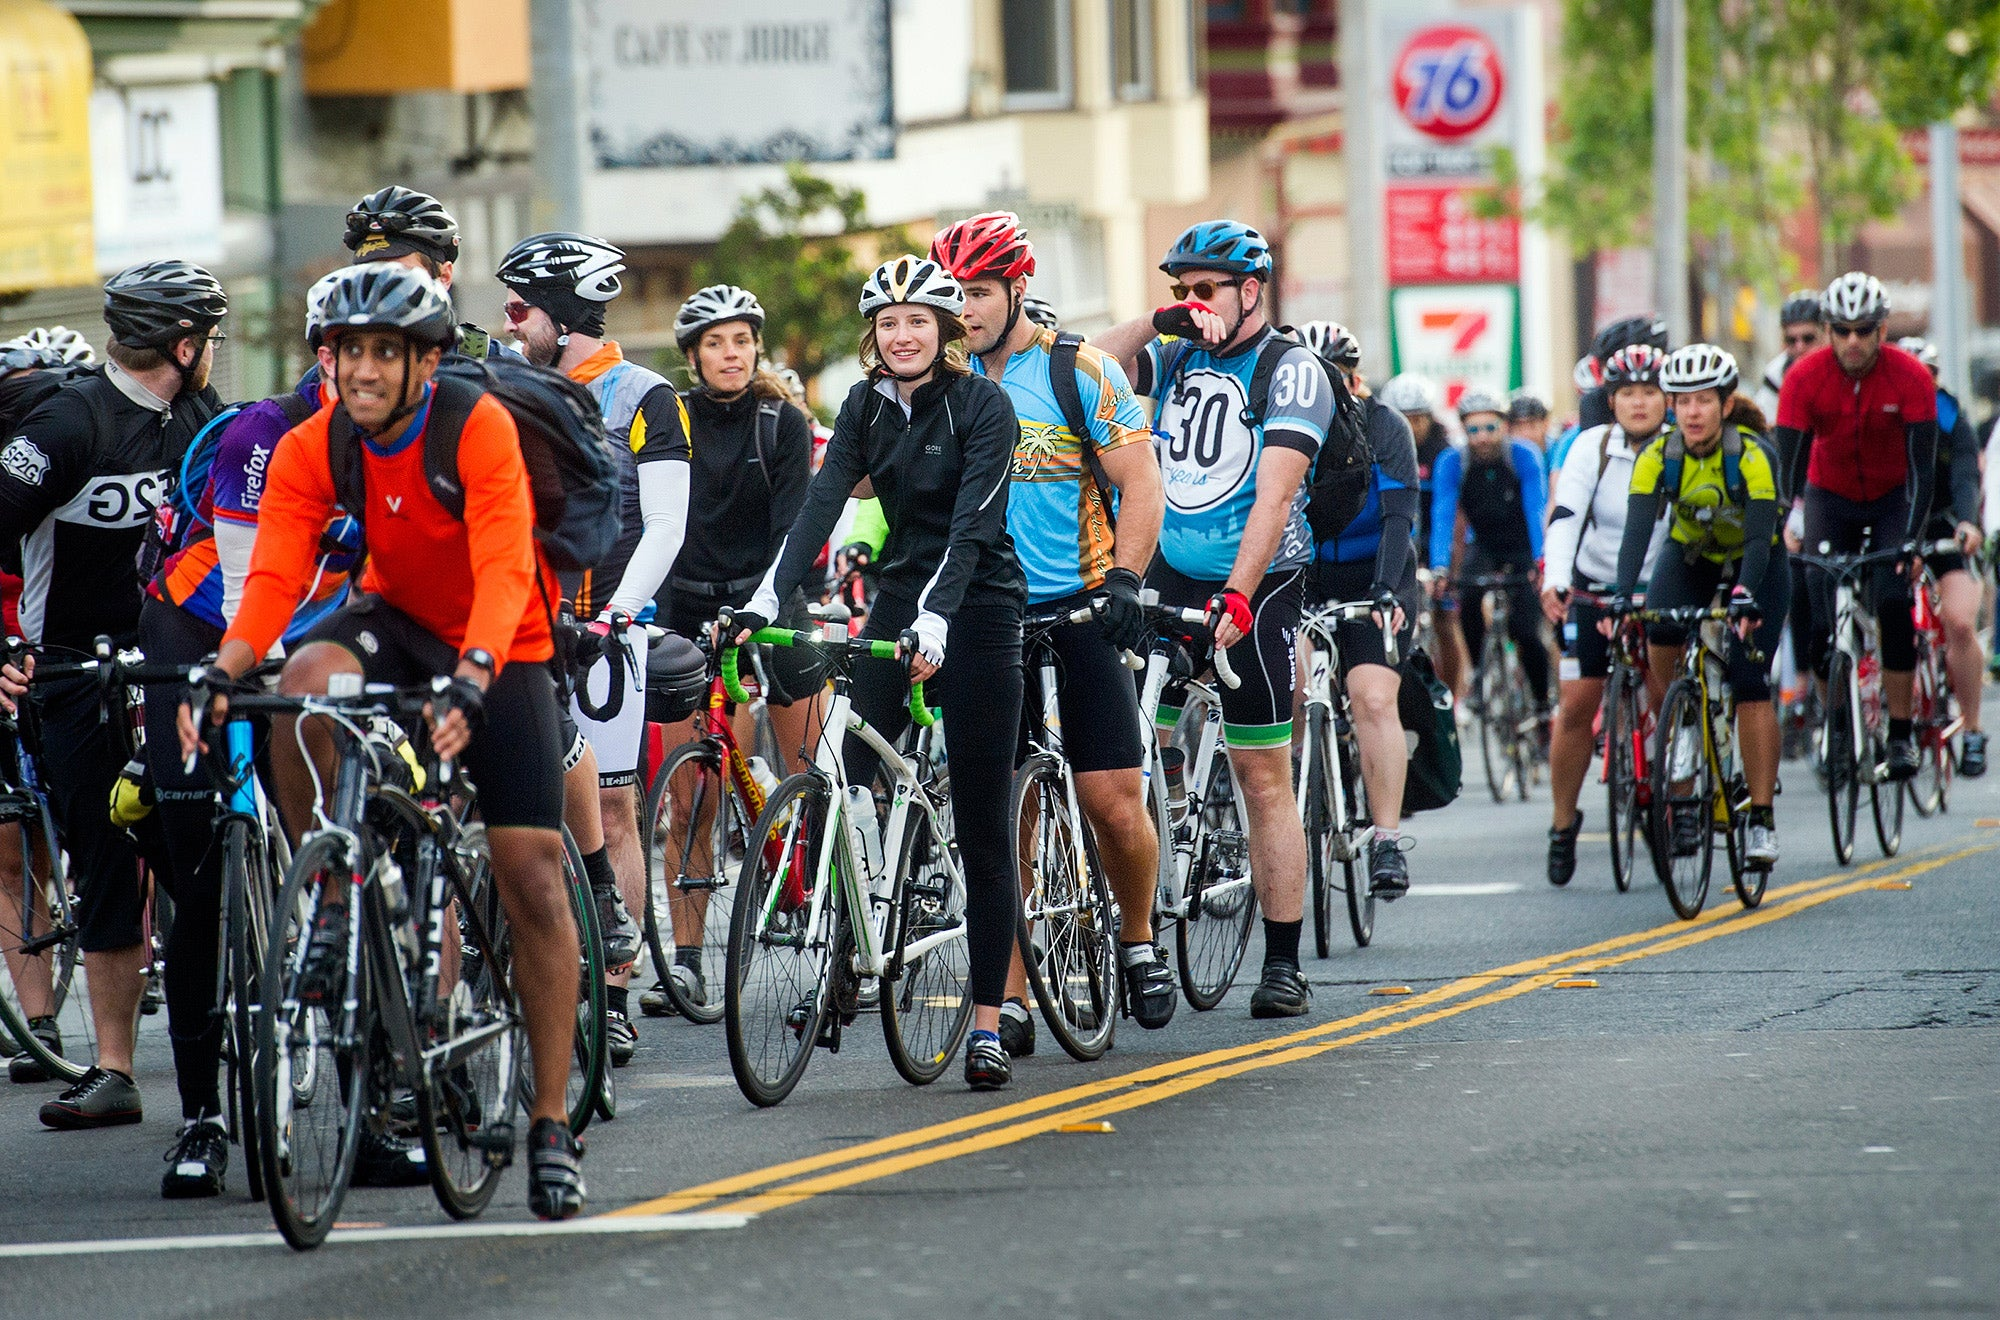 Cyclists take to the streets of San Francisco on Bike to Work Day 2014.